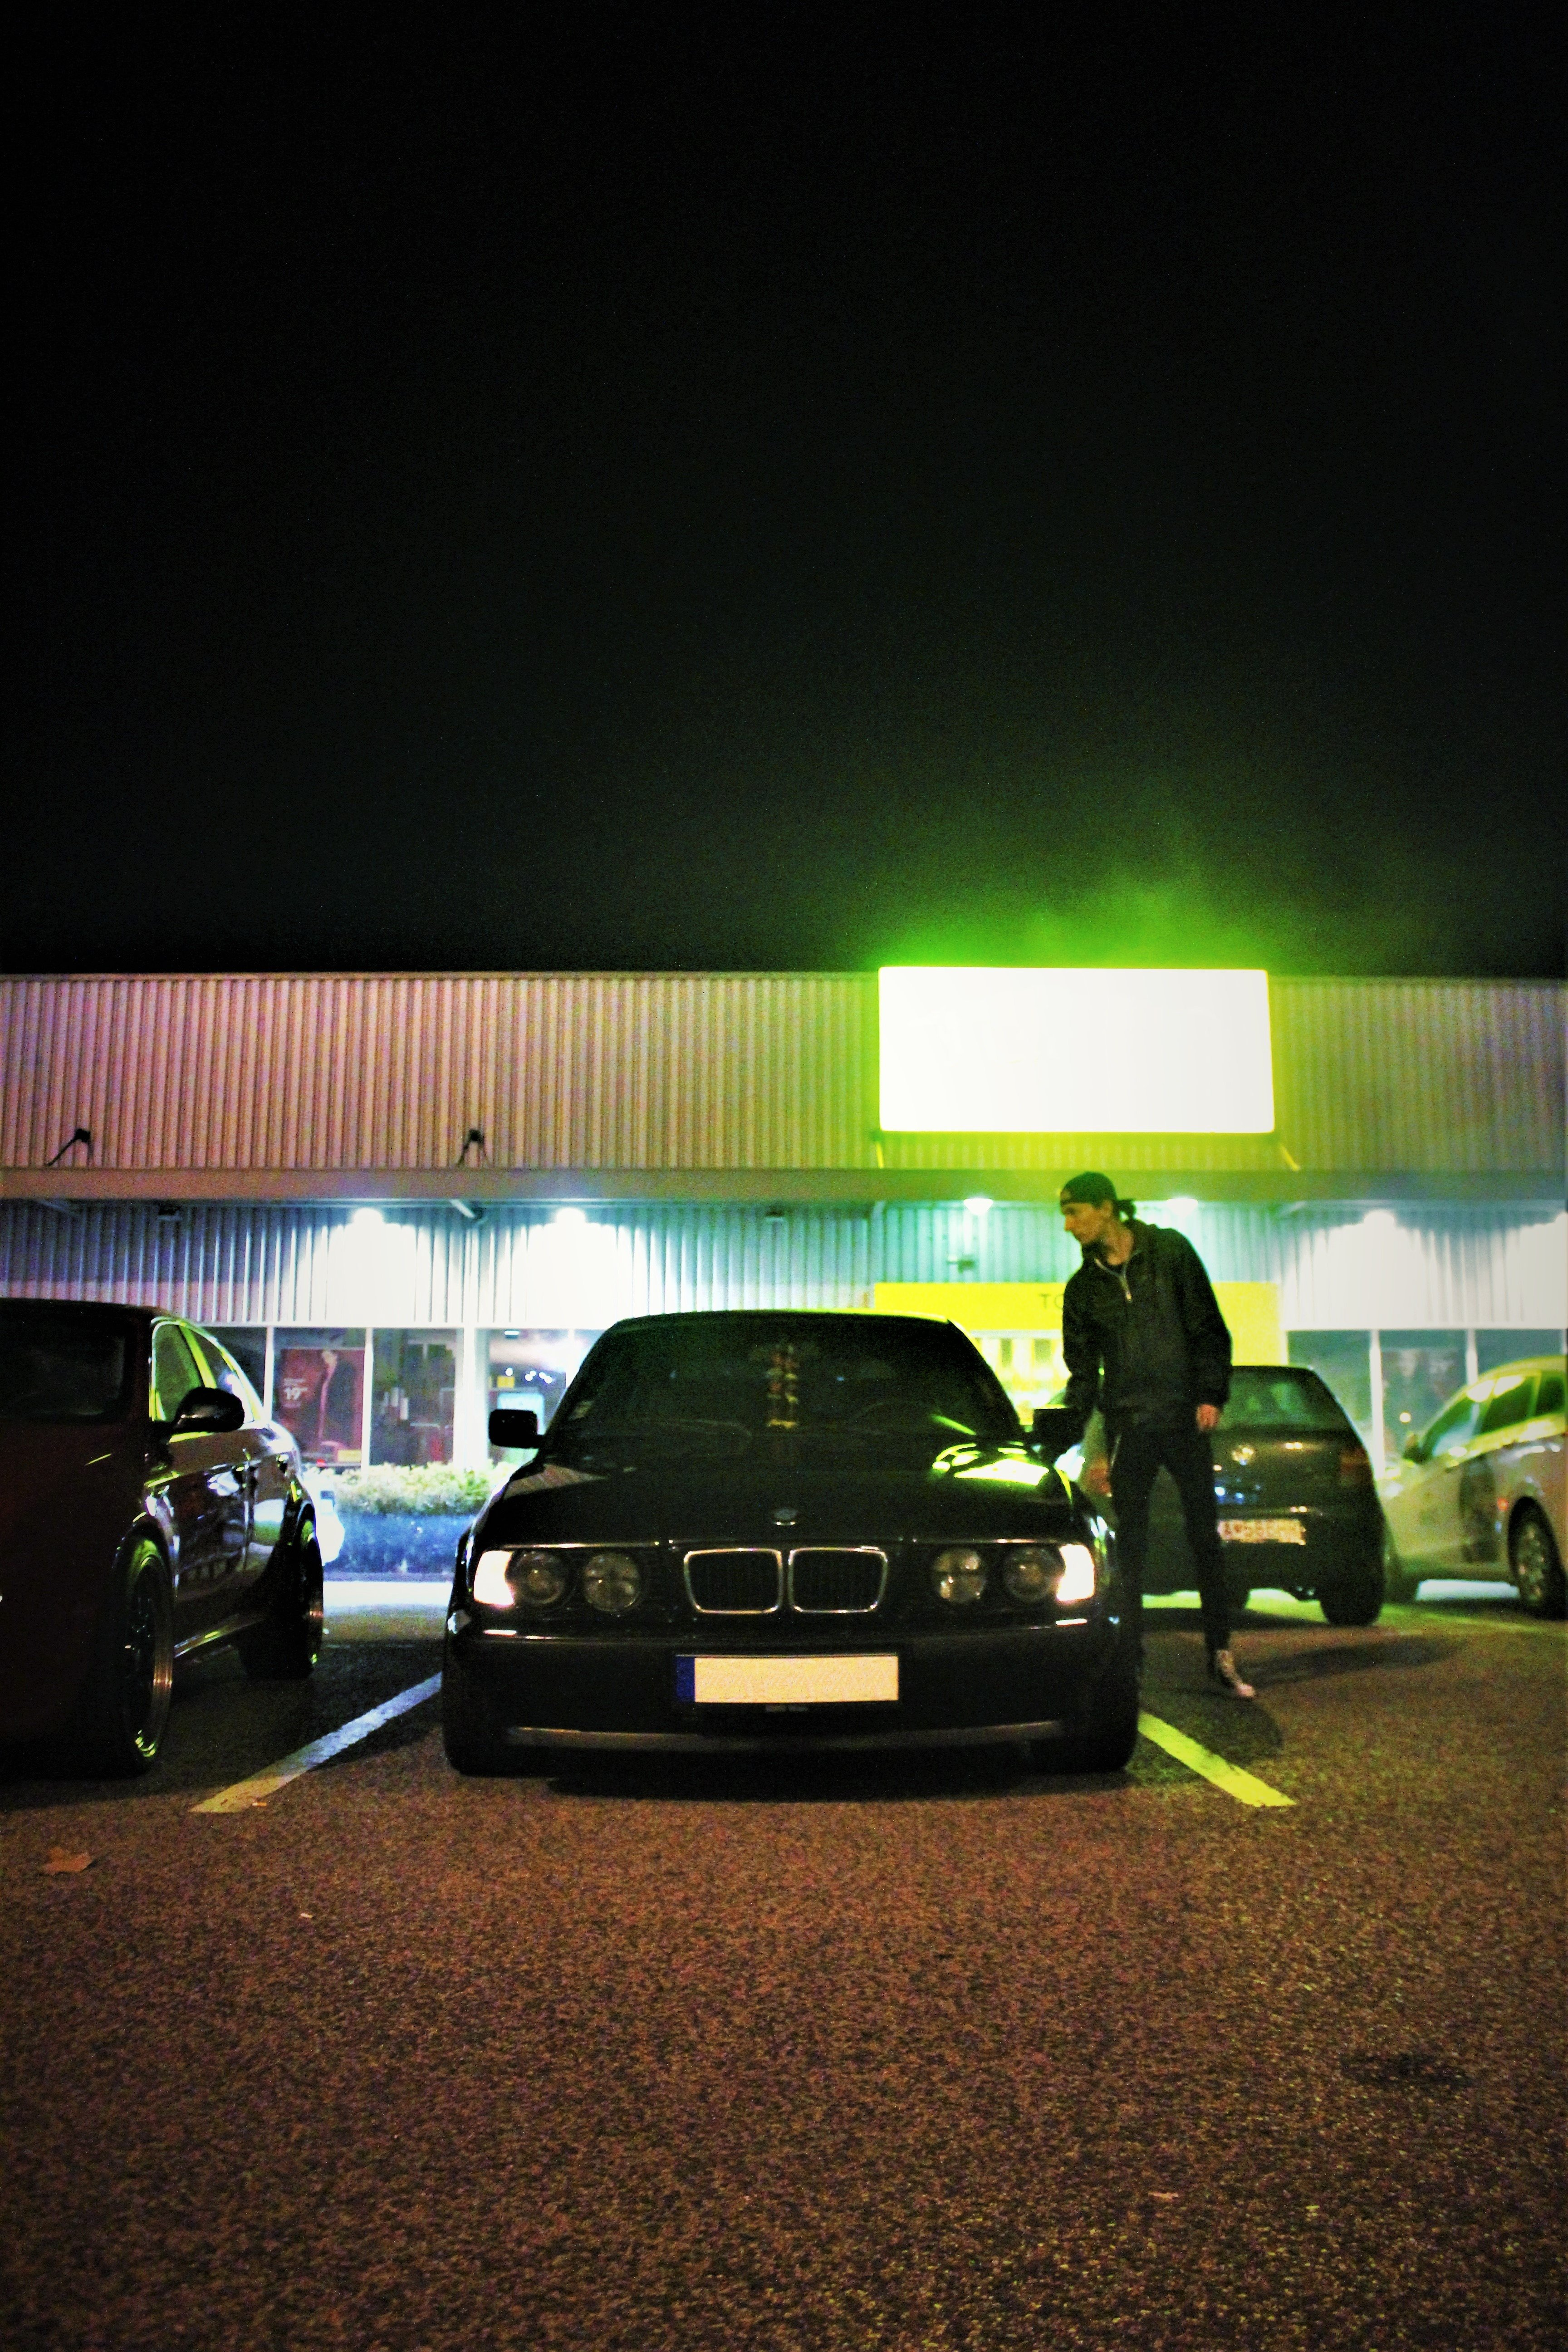 A man getting into his vehicle in a parking lot.   Pexels/ Adam Dubec